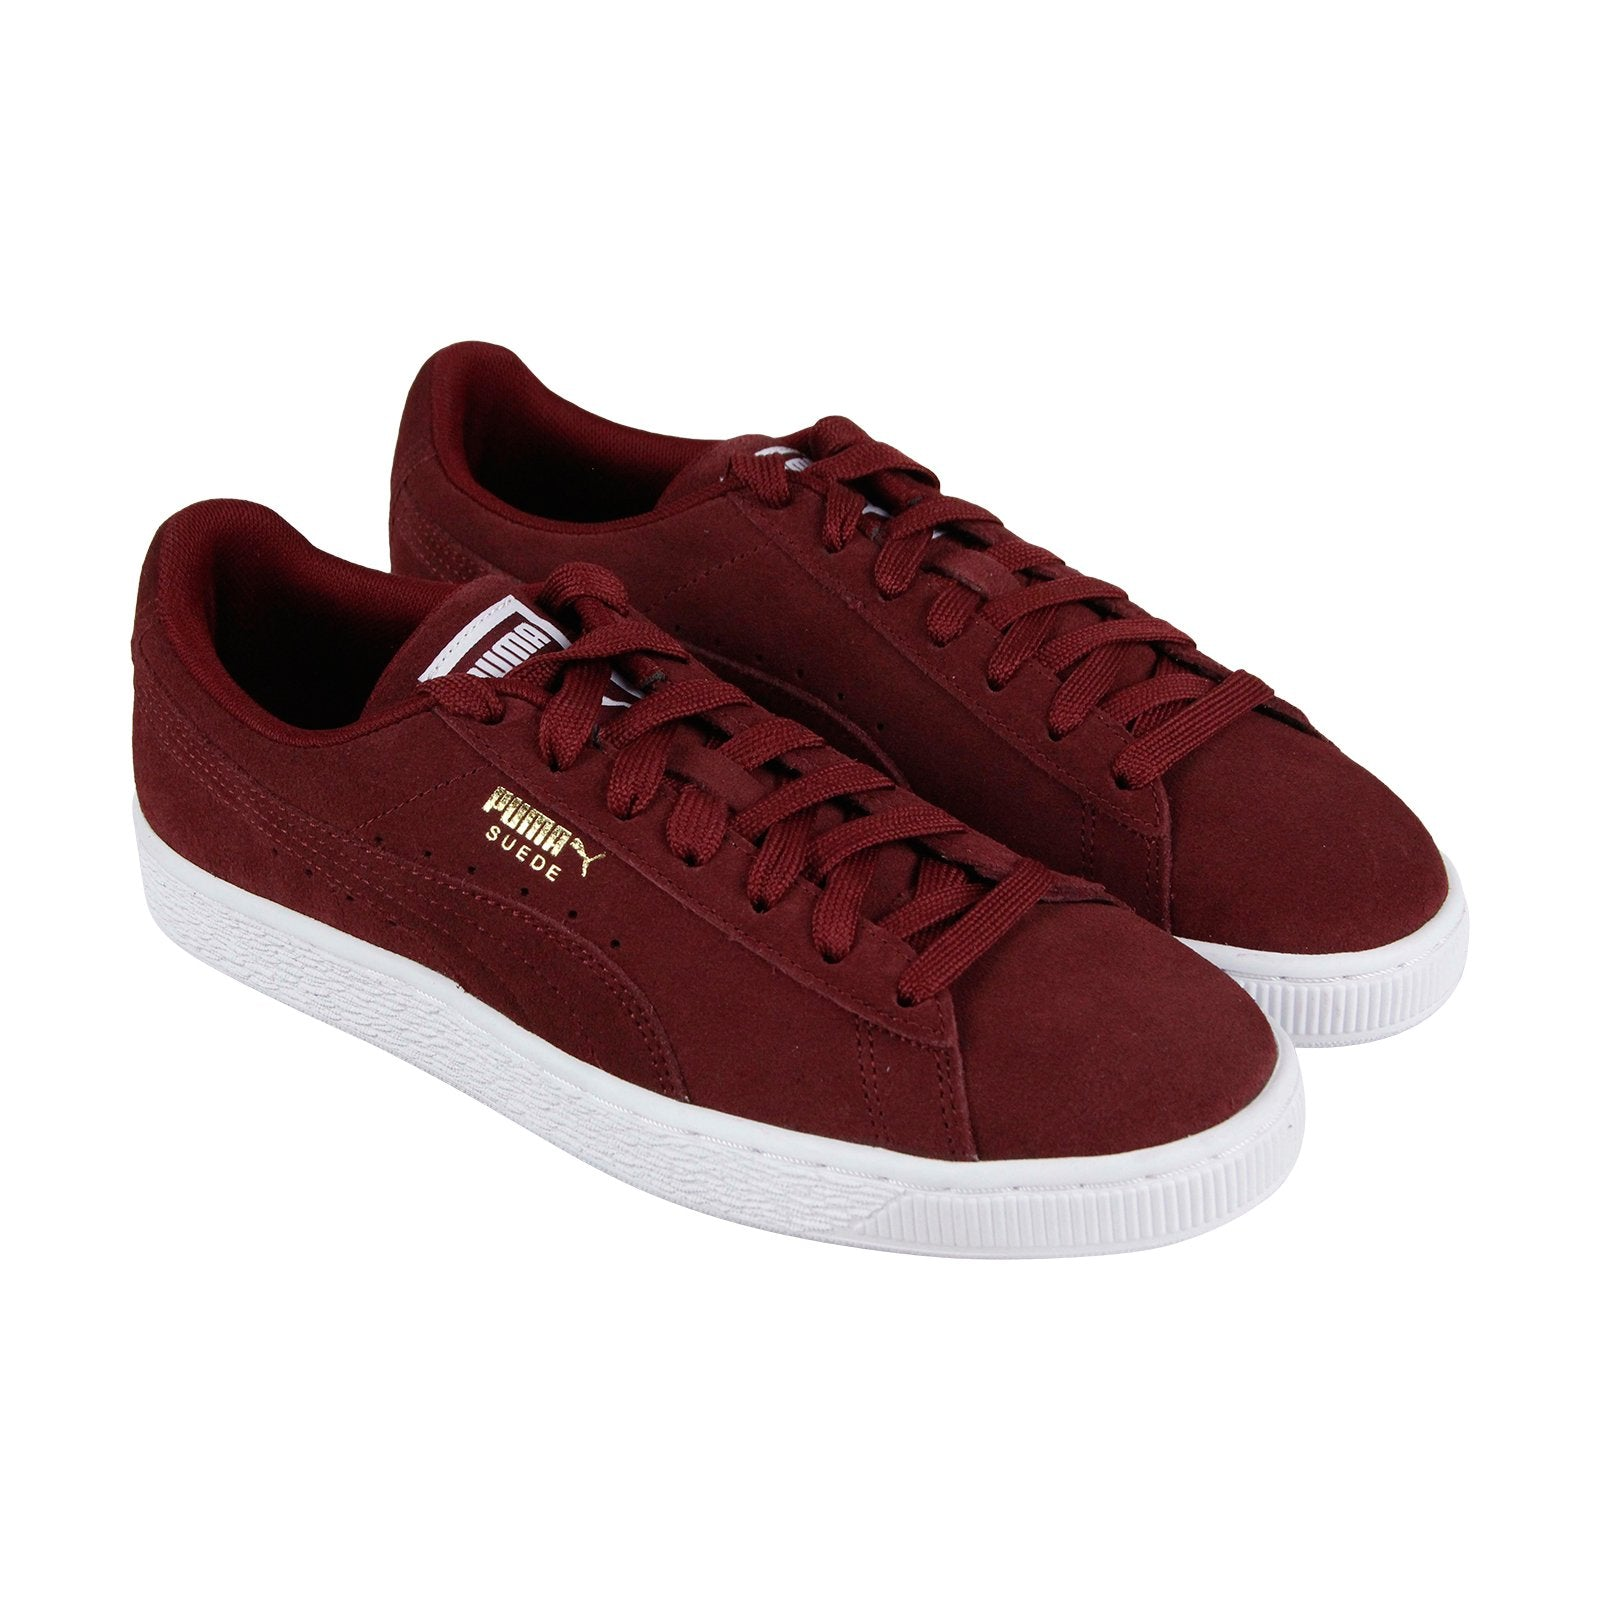 best sneakers 490ee ba3f6 Puma Suede Classic + Mens Red Suede Low Top Lace Up Sneakers Shoes